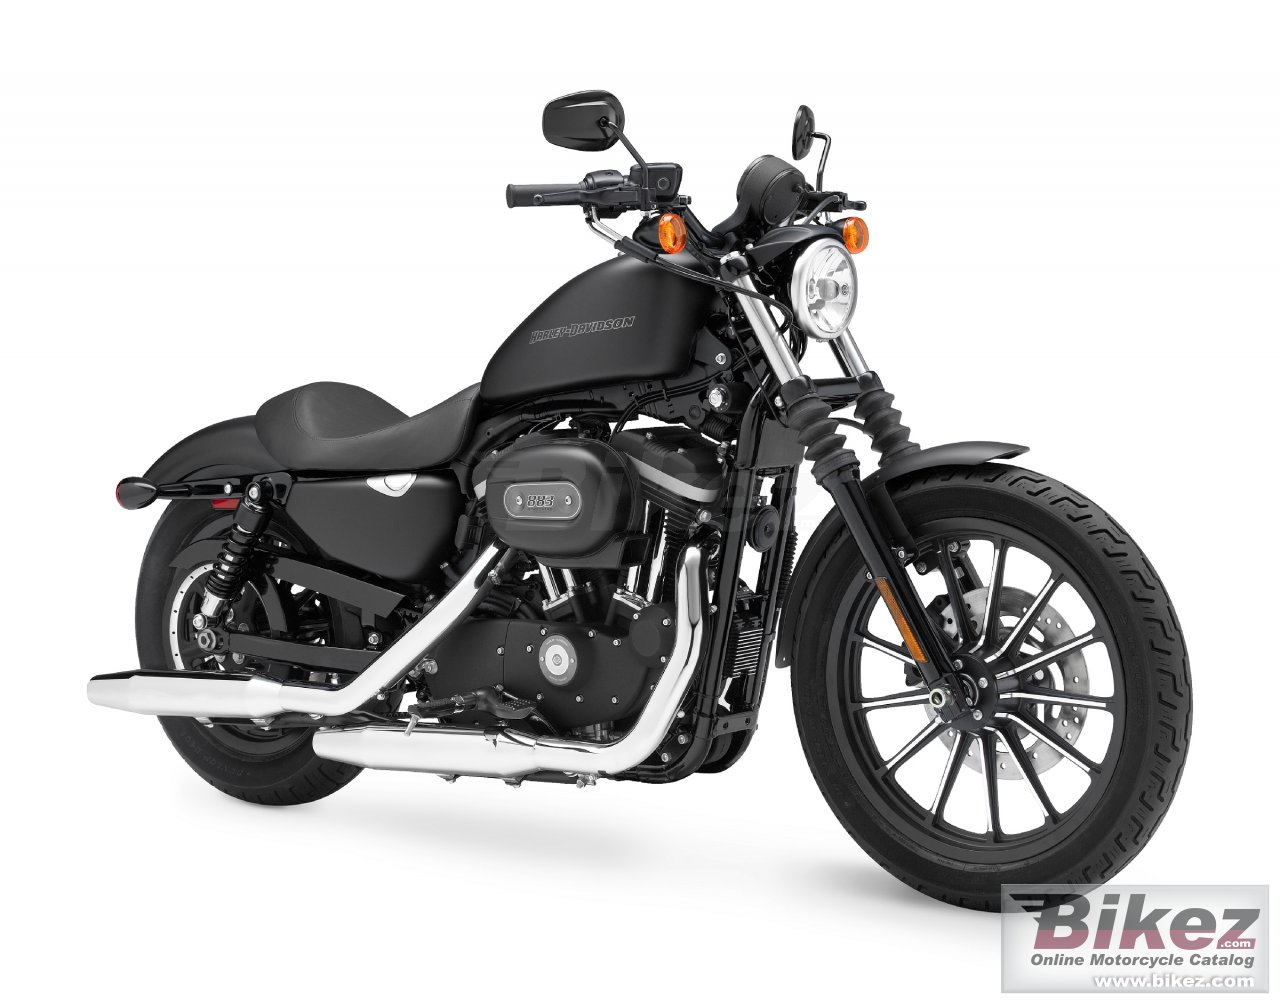 Big Harley-Davidson sportster xl883n iron 833 picture and wallpaper from Bikez.com